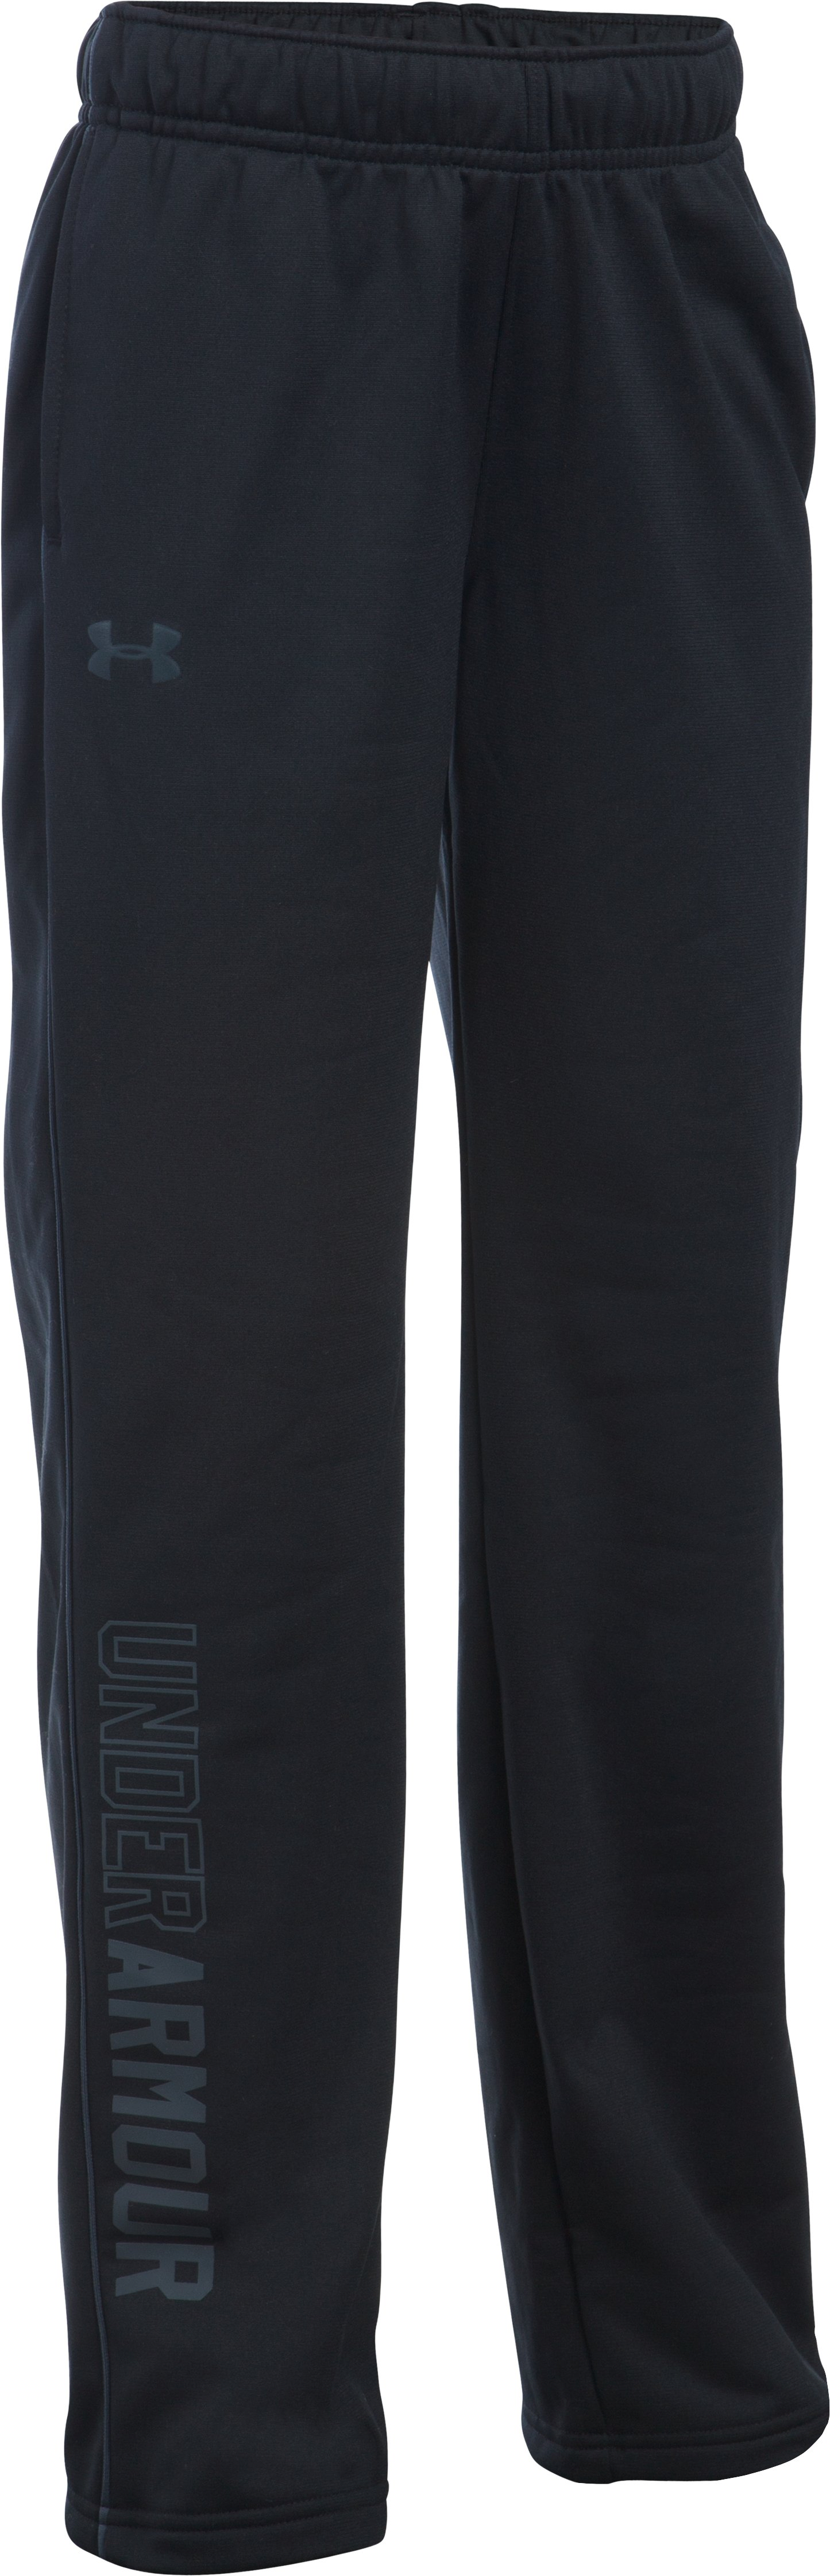 Girls' UA Rival Training Pants, Black